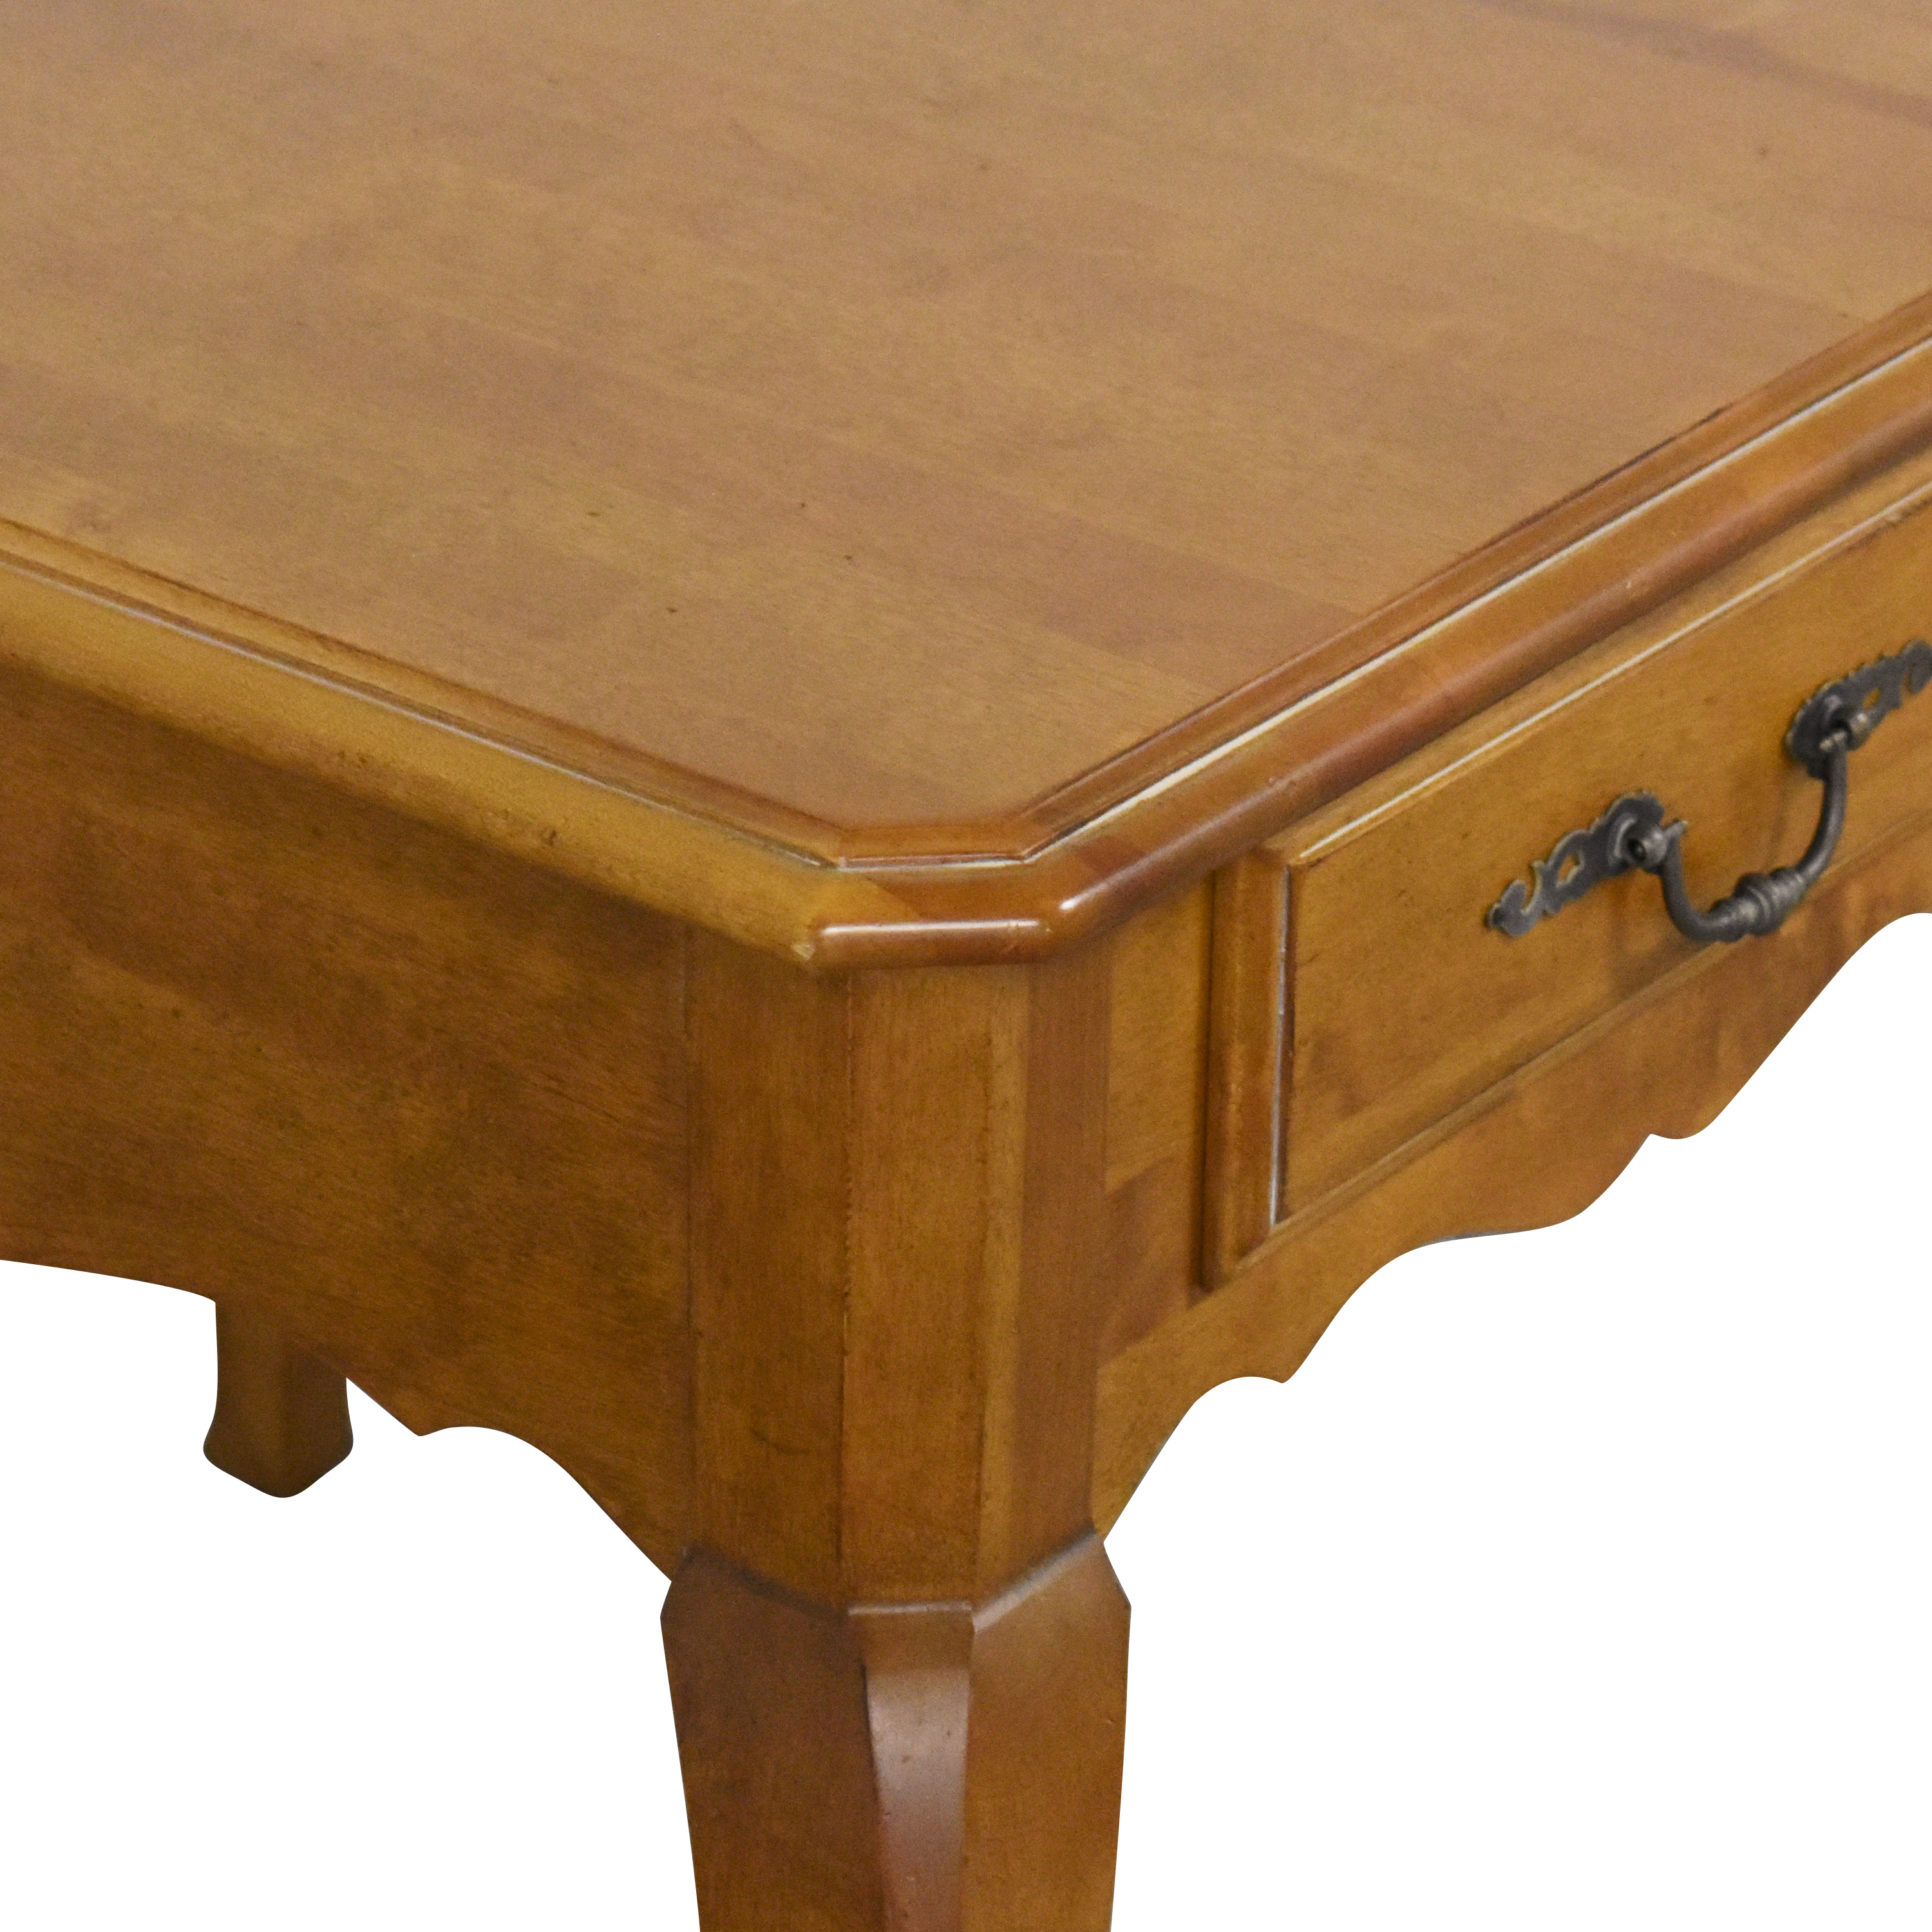 Ethan Allen Ethan Allen Country French Provence End Tables for sale